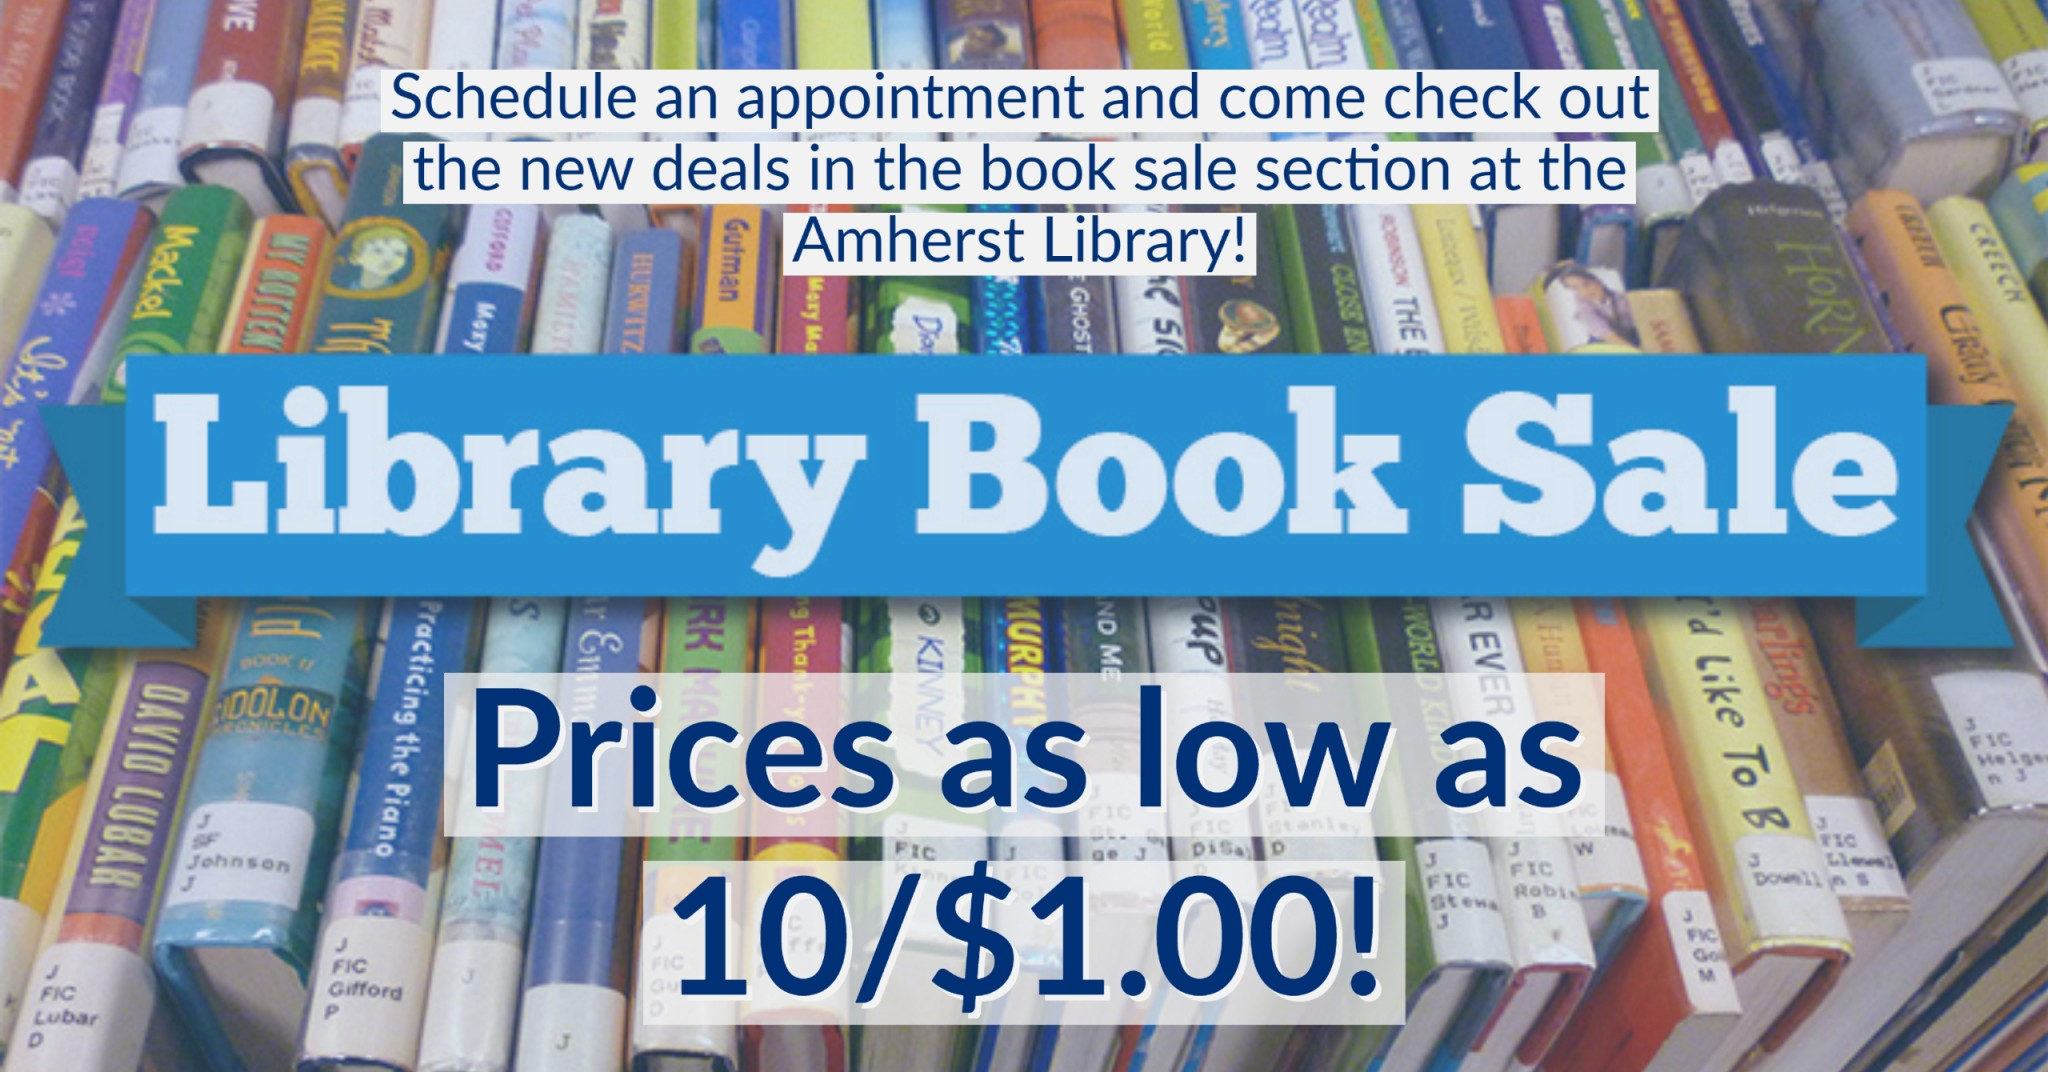 Library Book Sale. Schedule an appointment and come check out the new deals in the book sale section at the Amherst Library! Prices as low as 10 for $1.00!